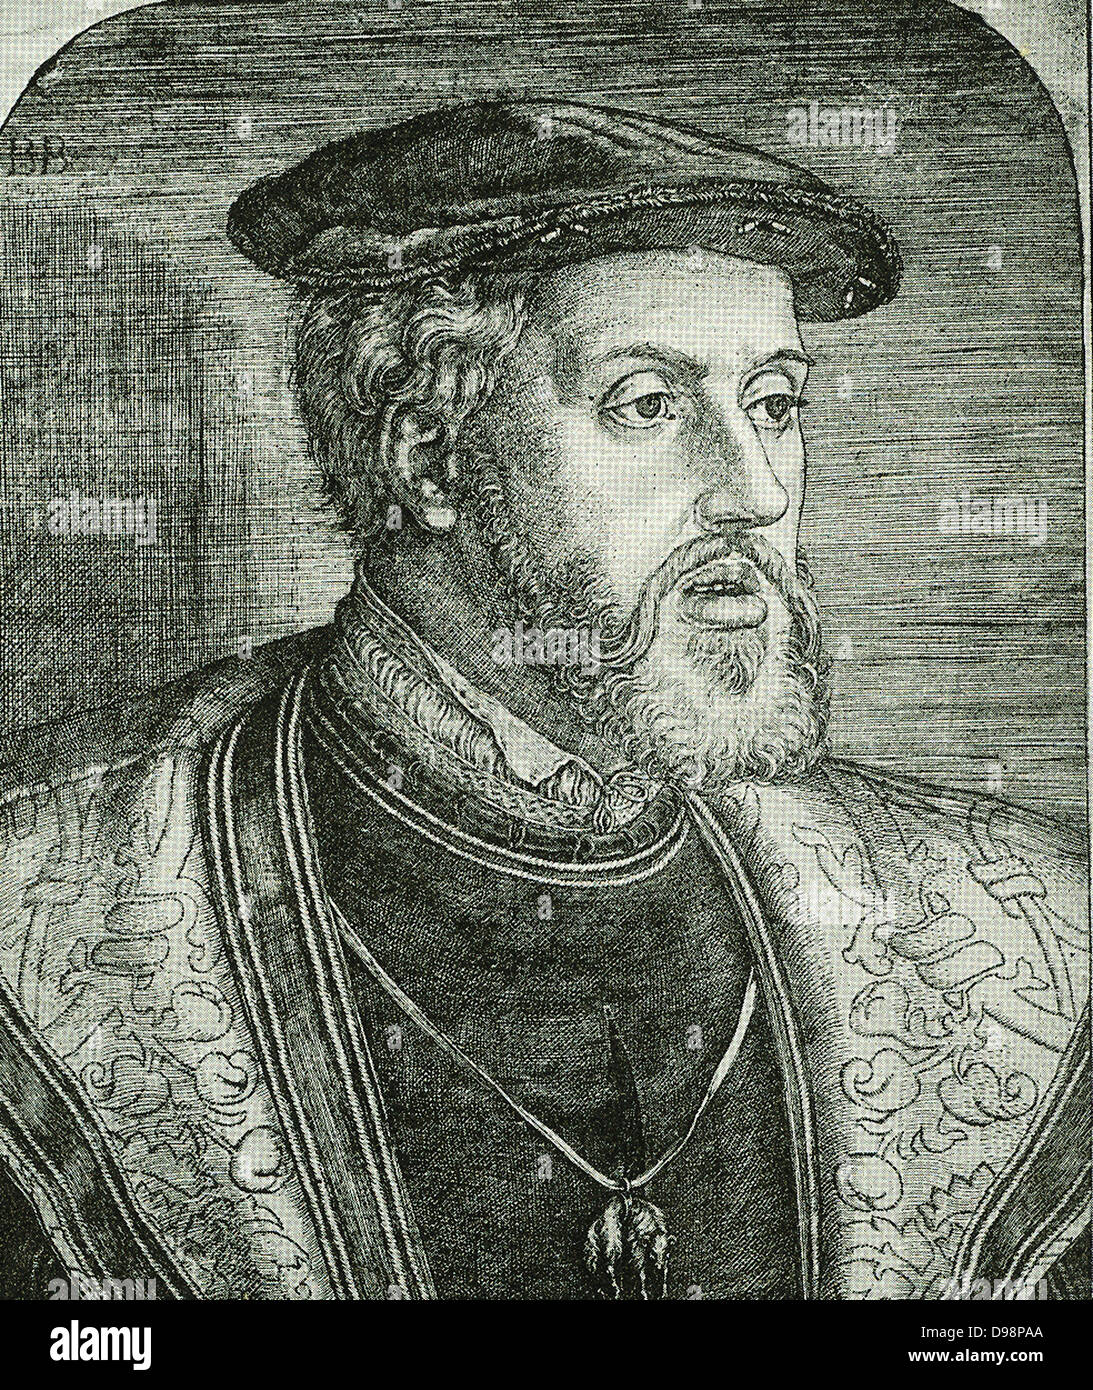 The Reformation - Charles V Shortly before 1550 a combination of circumstances united all seventeen provinces of - Stock Image